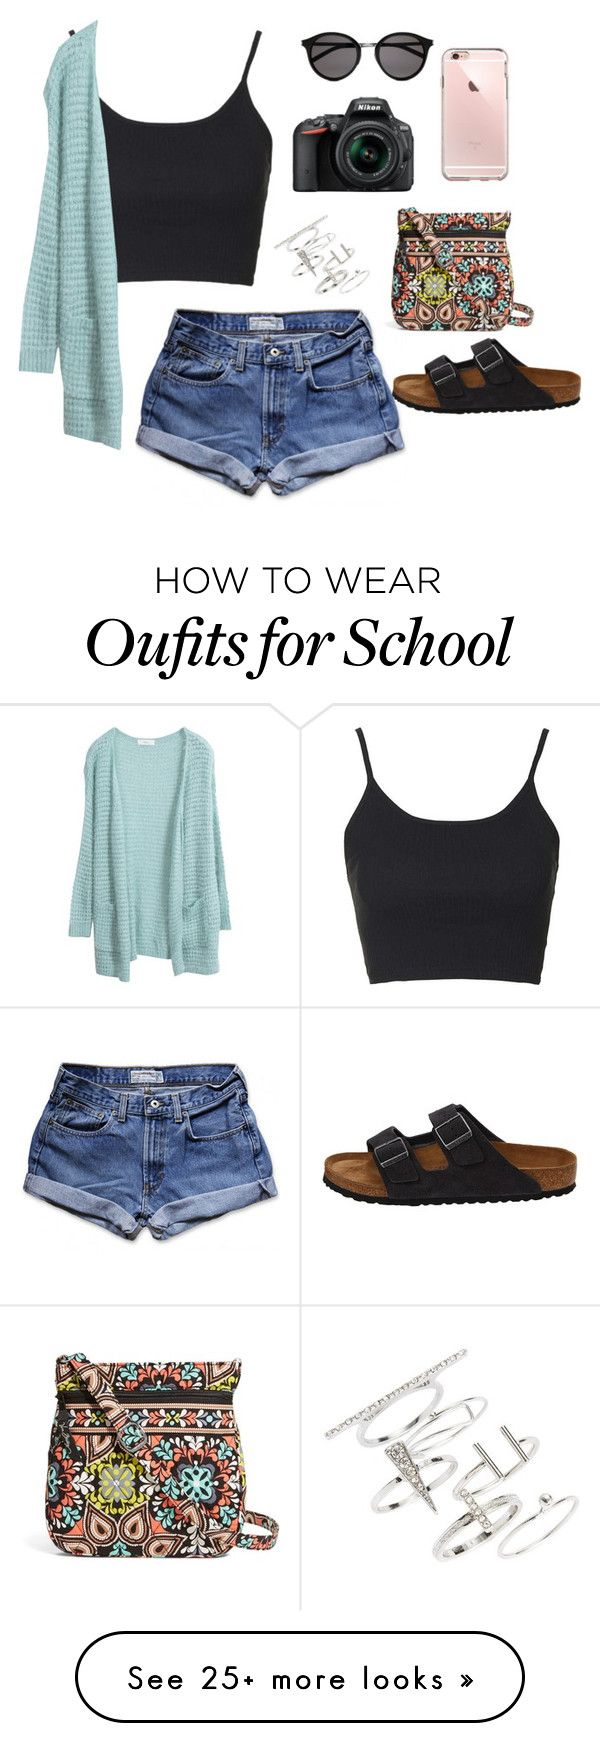 I cant wait for the long summer days and NO SCHOOL by hopebarcus on Polyvore featuring Topshop, Abercrombie Fitch, Yves Saint Laurent, Vera Bradley, Birkenstock and Nikon - http://amzn.to/2g1fale